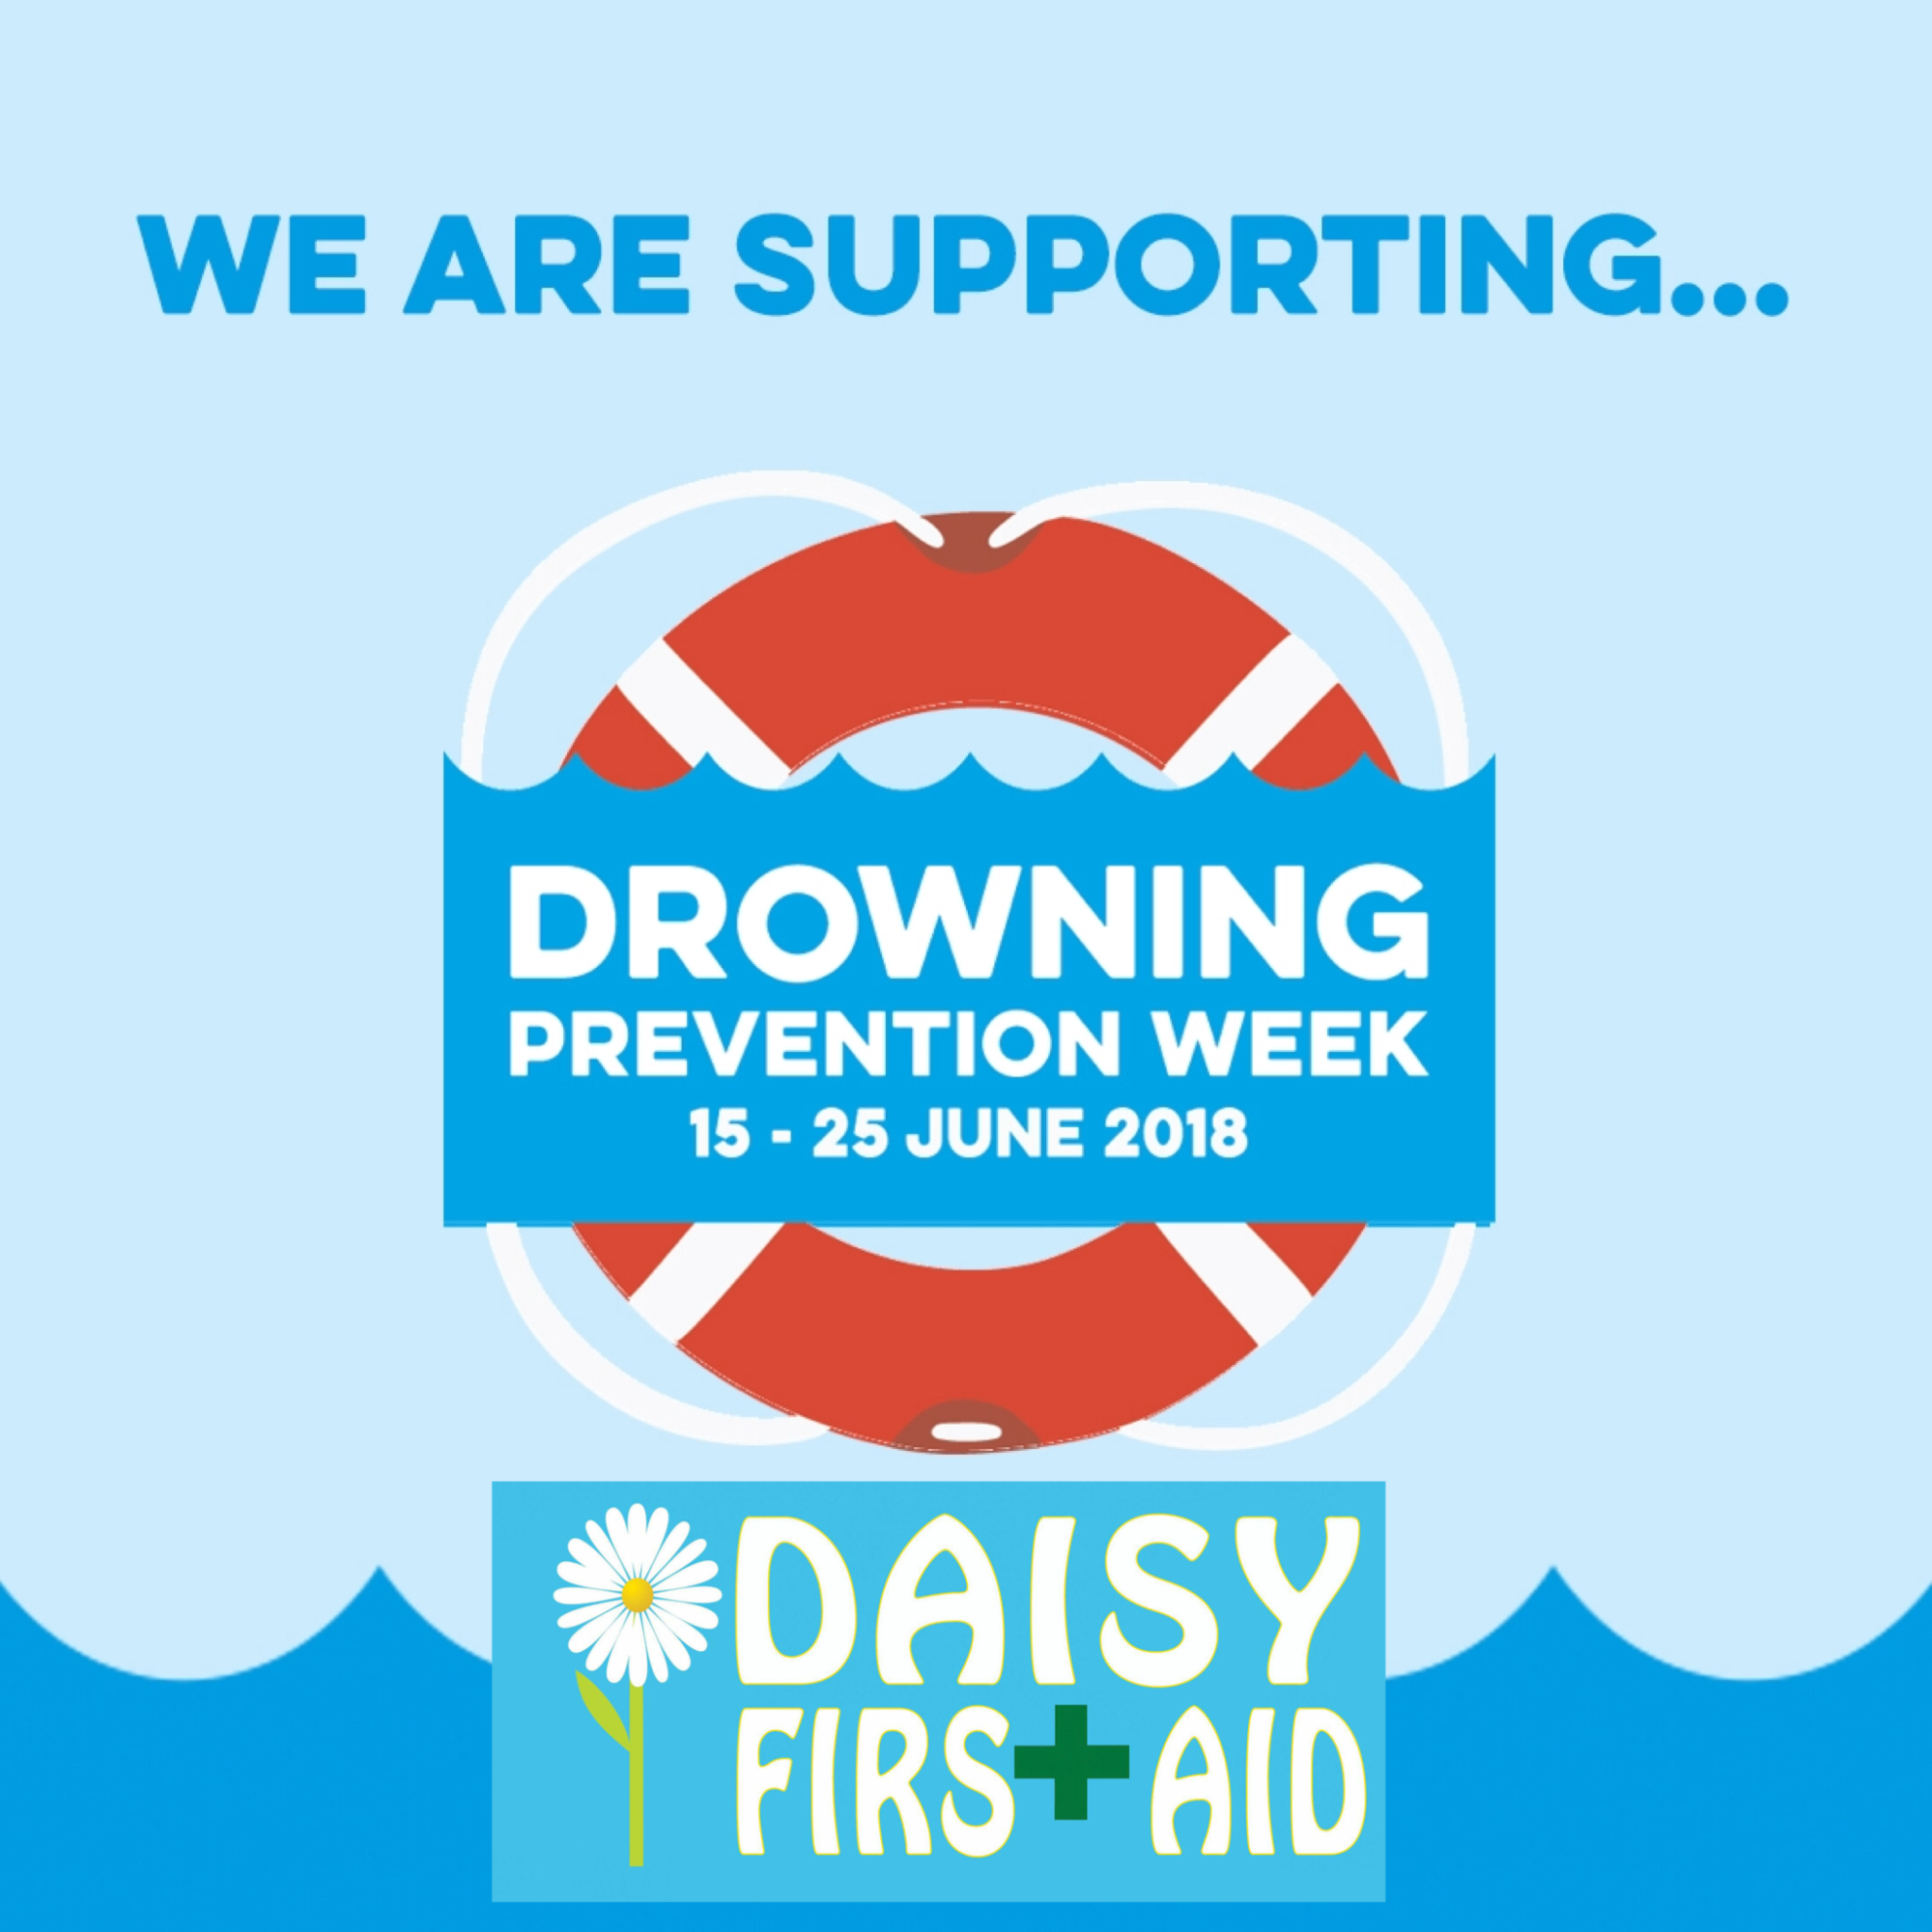 Drowning Prevention Week 2018 - Daisy First Aid